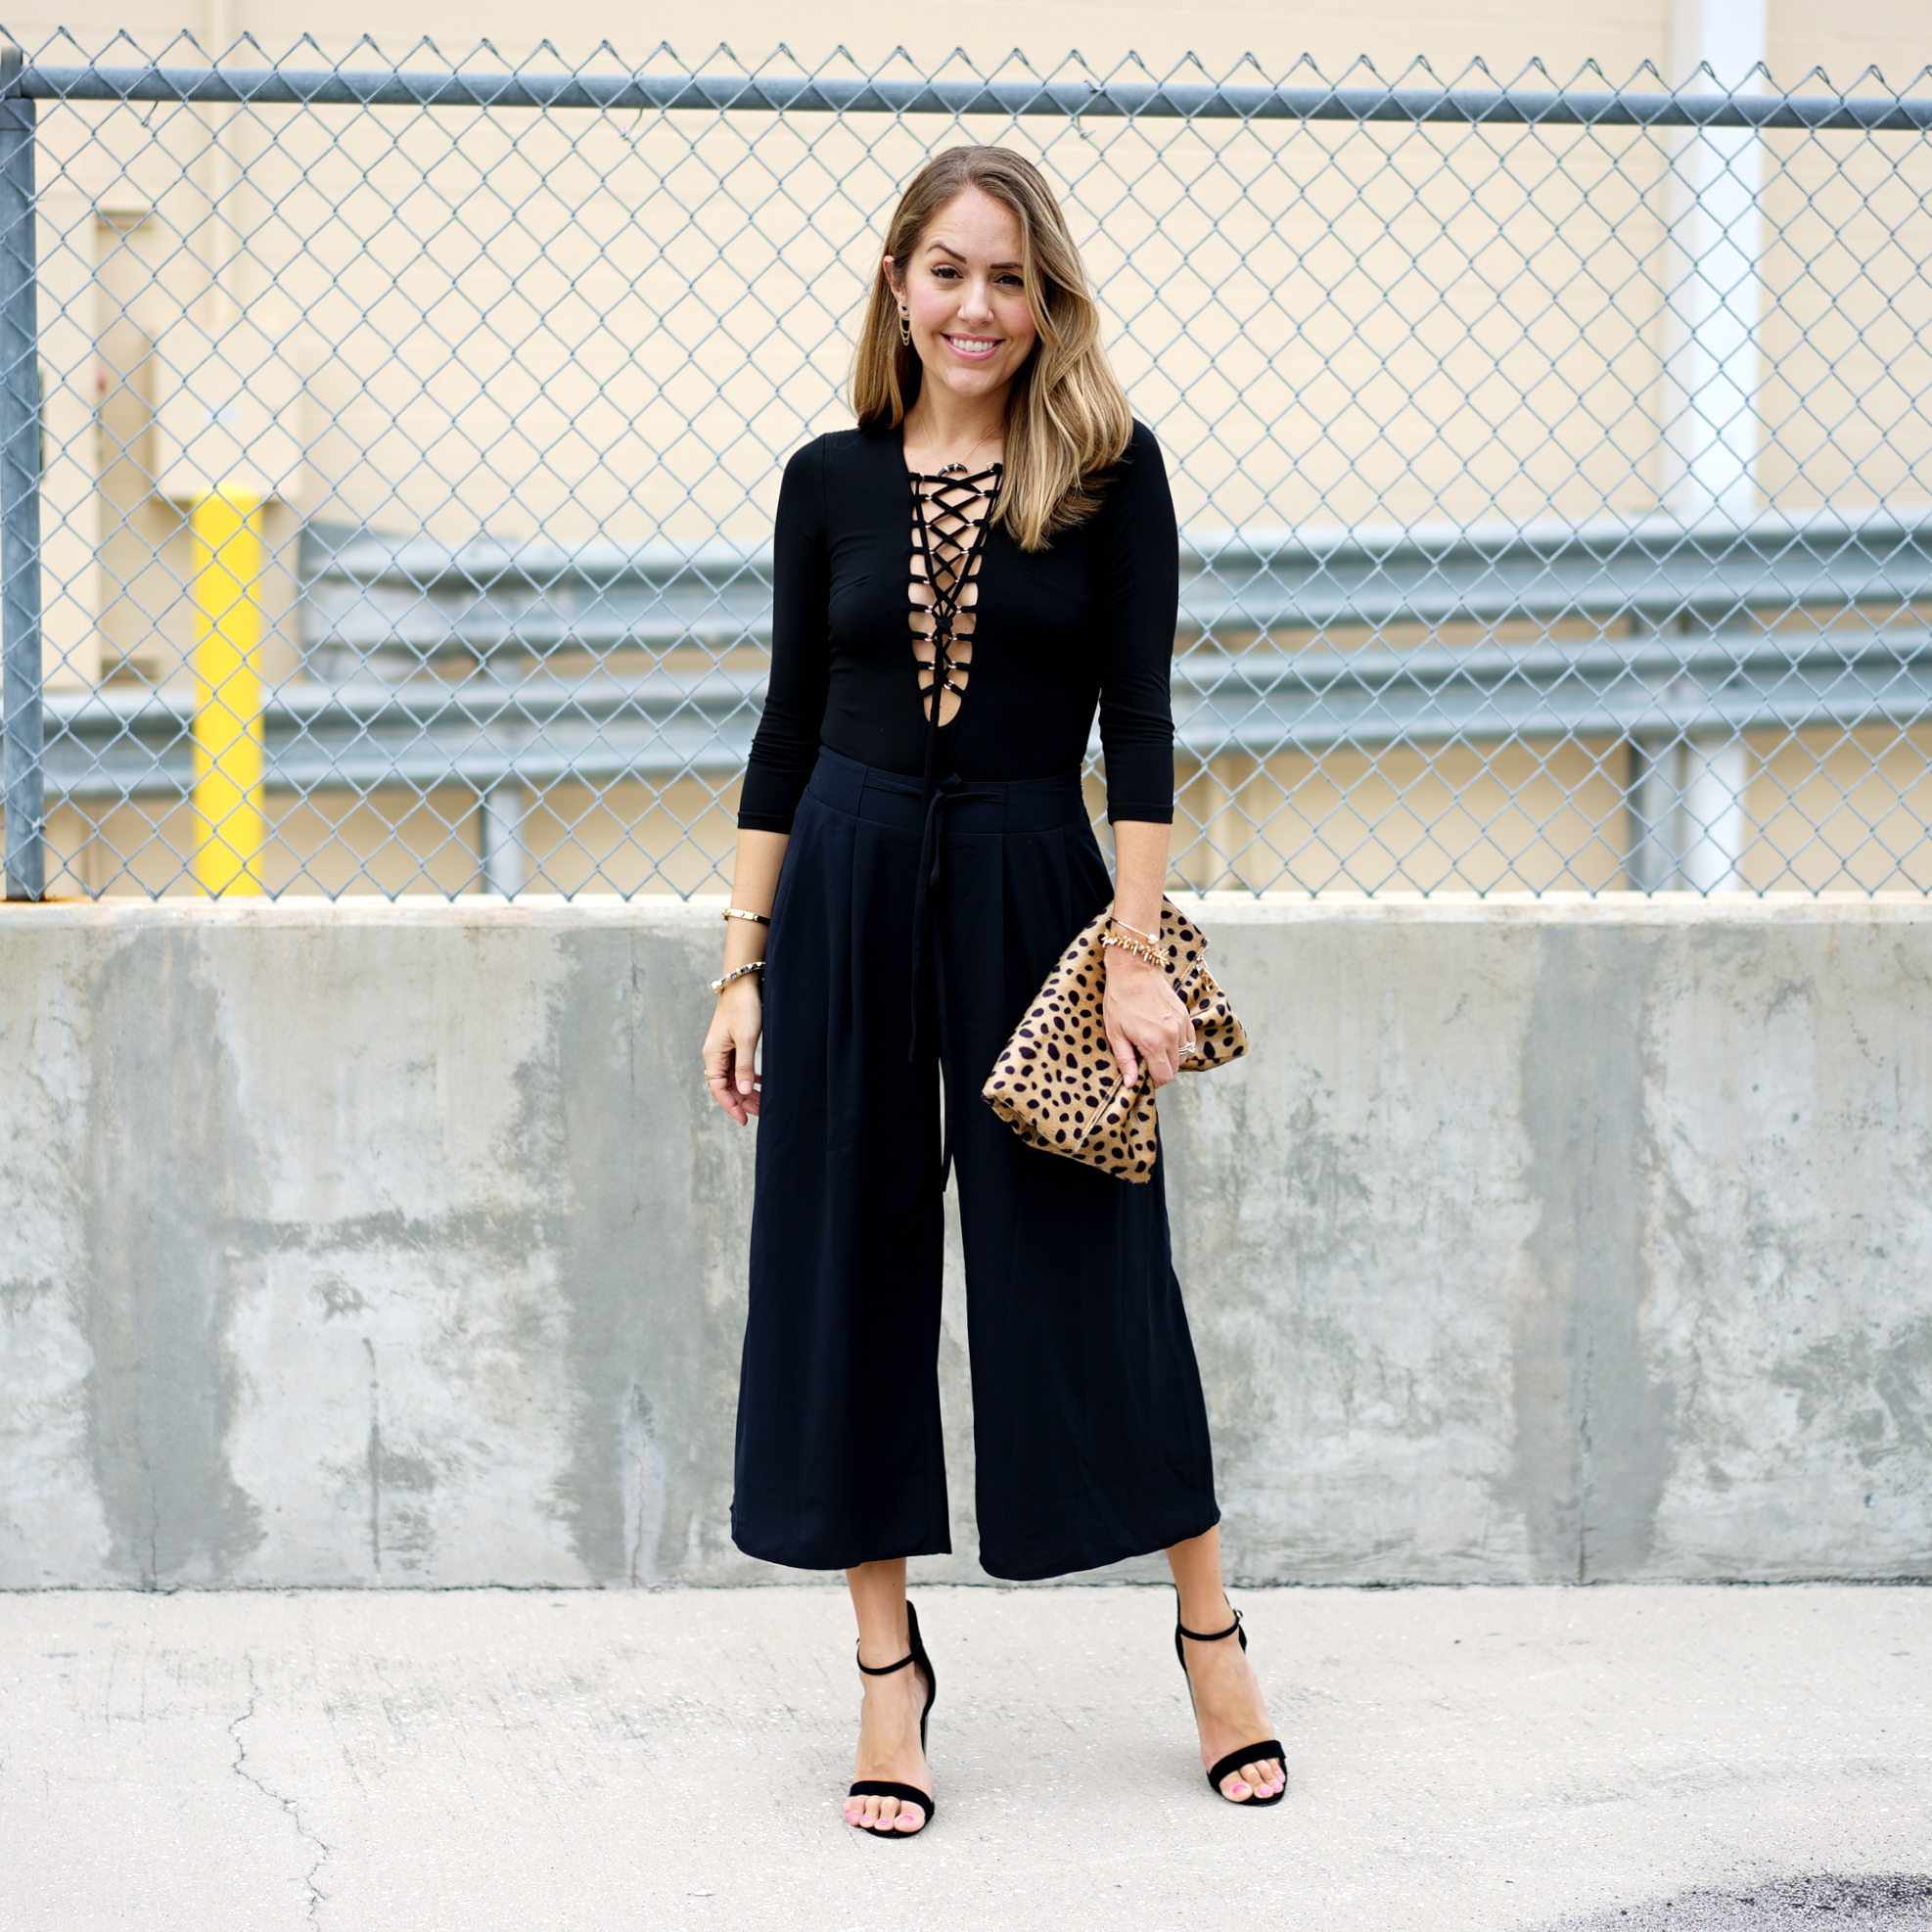 Lace up bodysuit and black culottes with leopard clutch